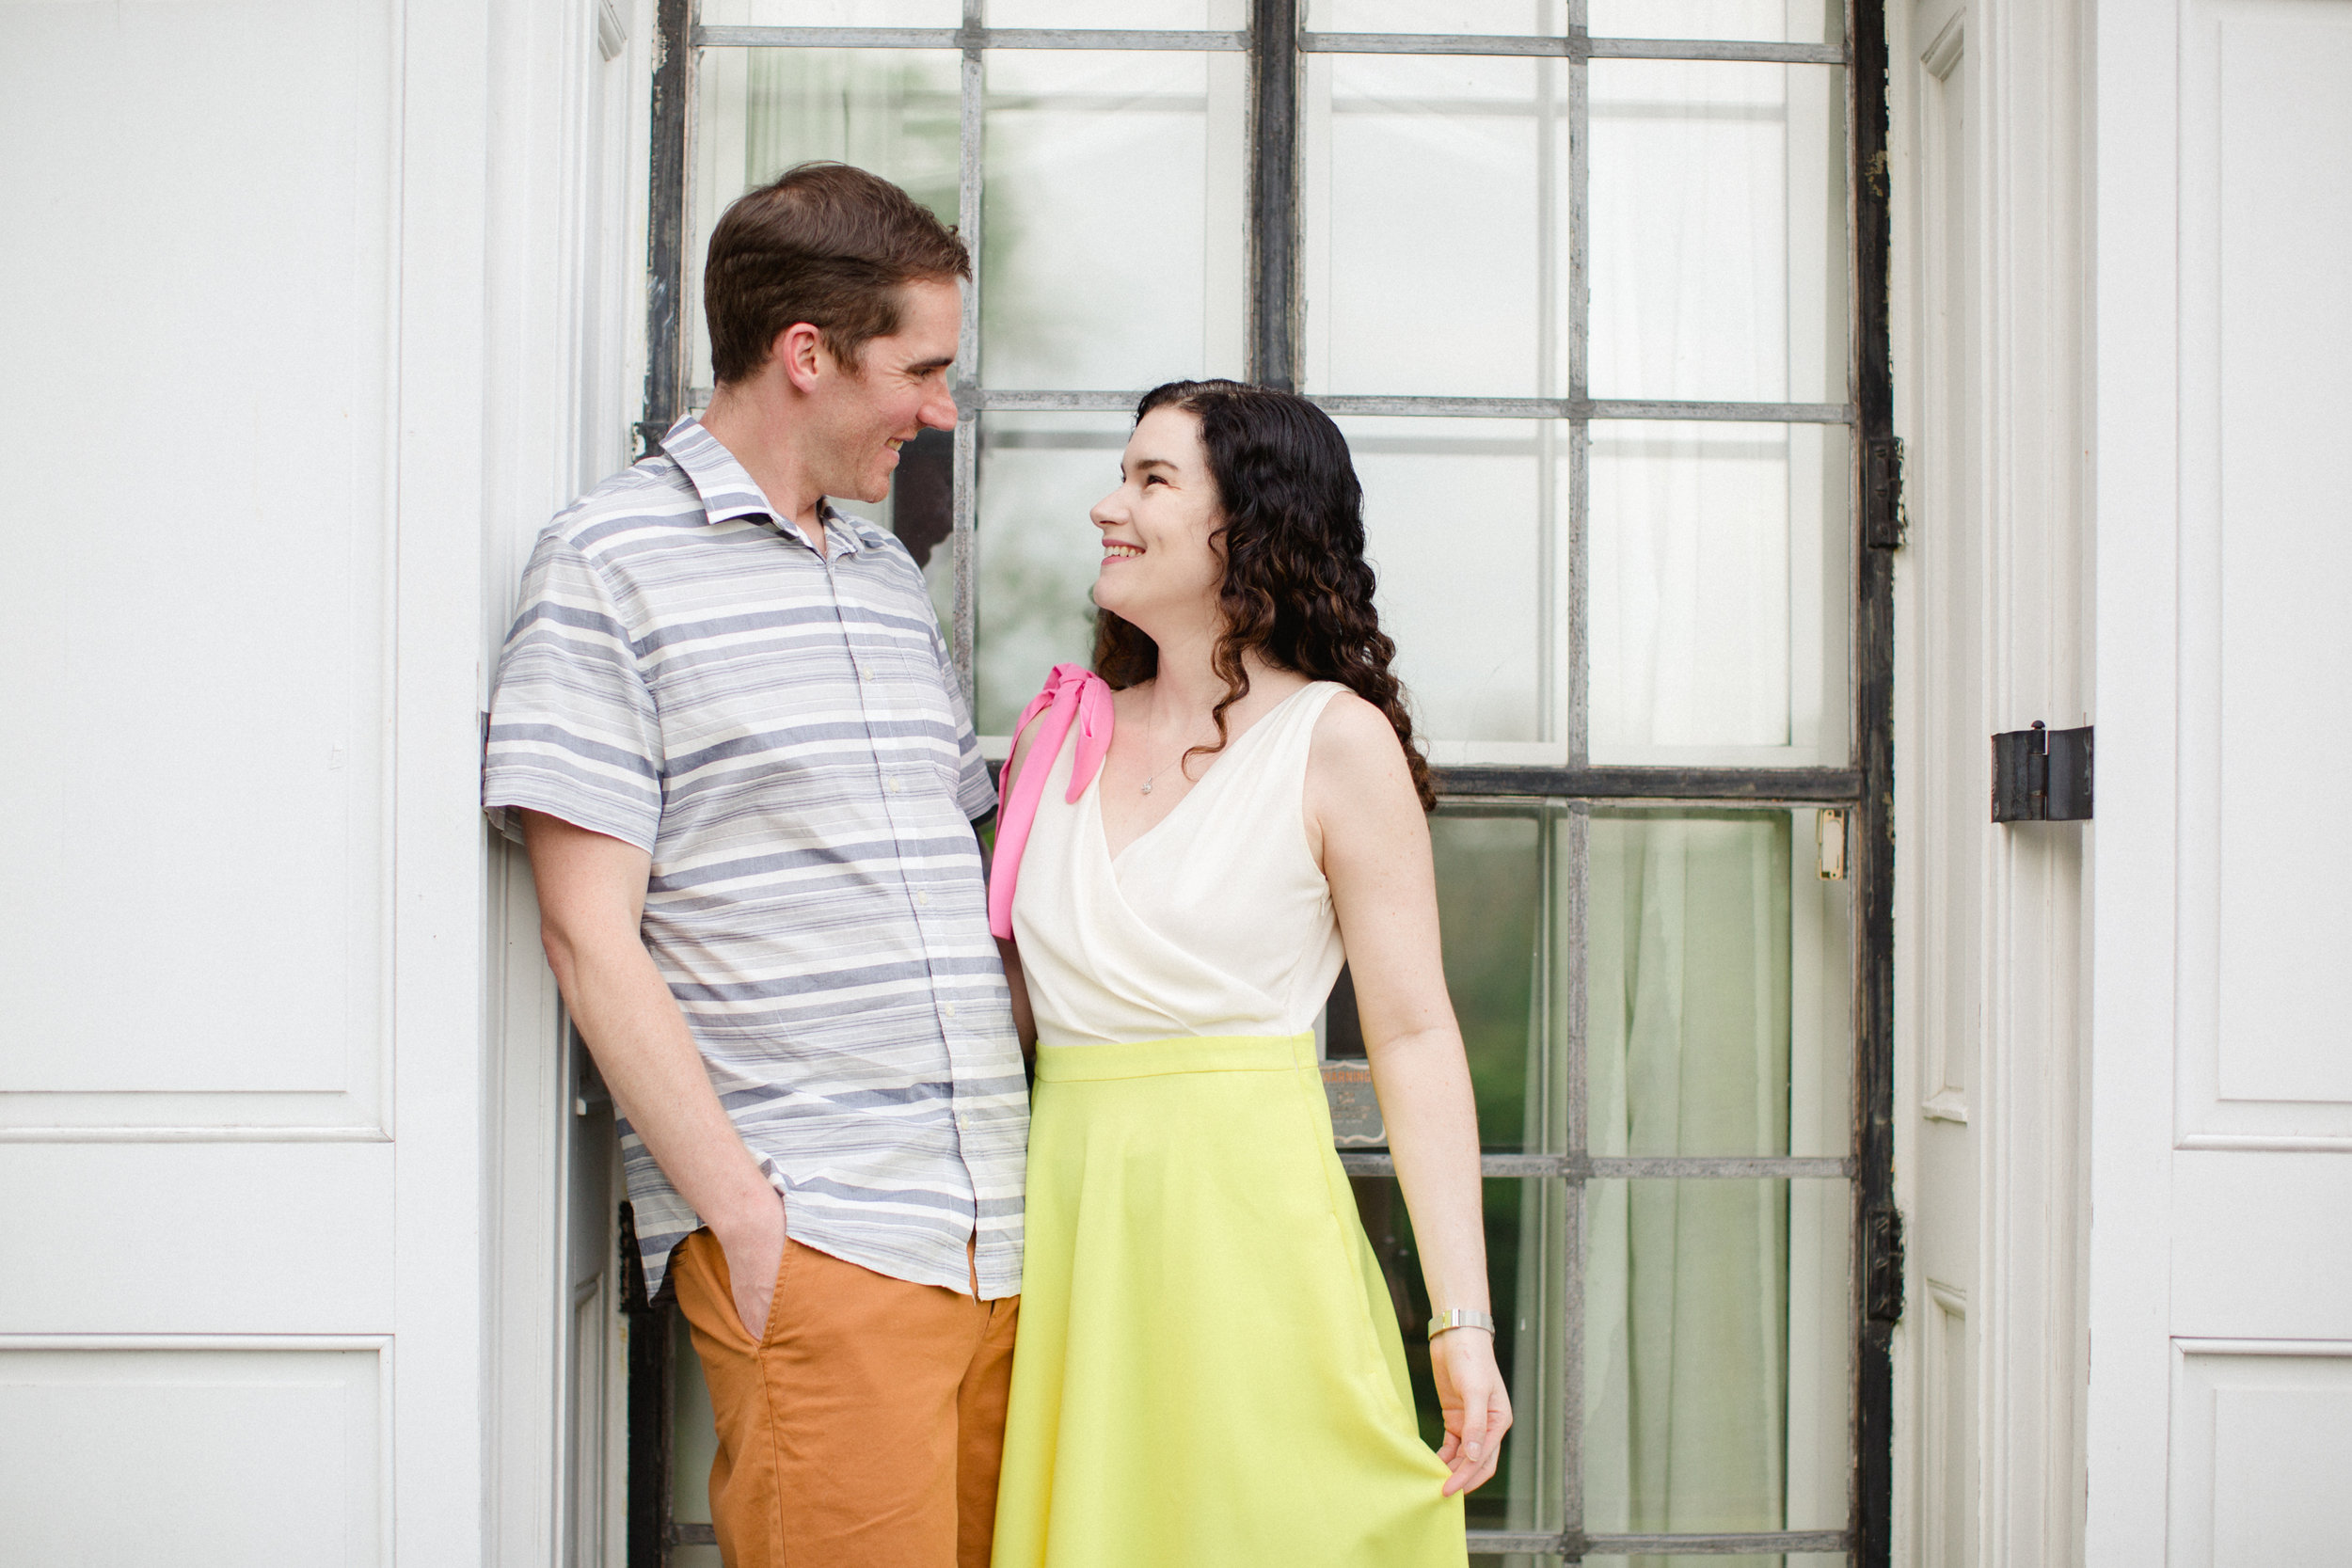 Moscow PA Engagement Session Photos_JDP-19.jpg